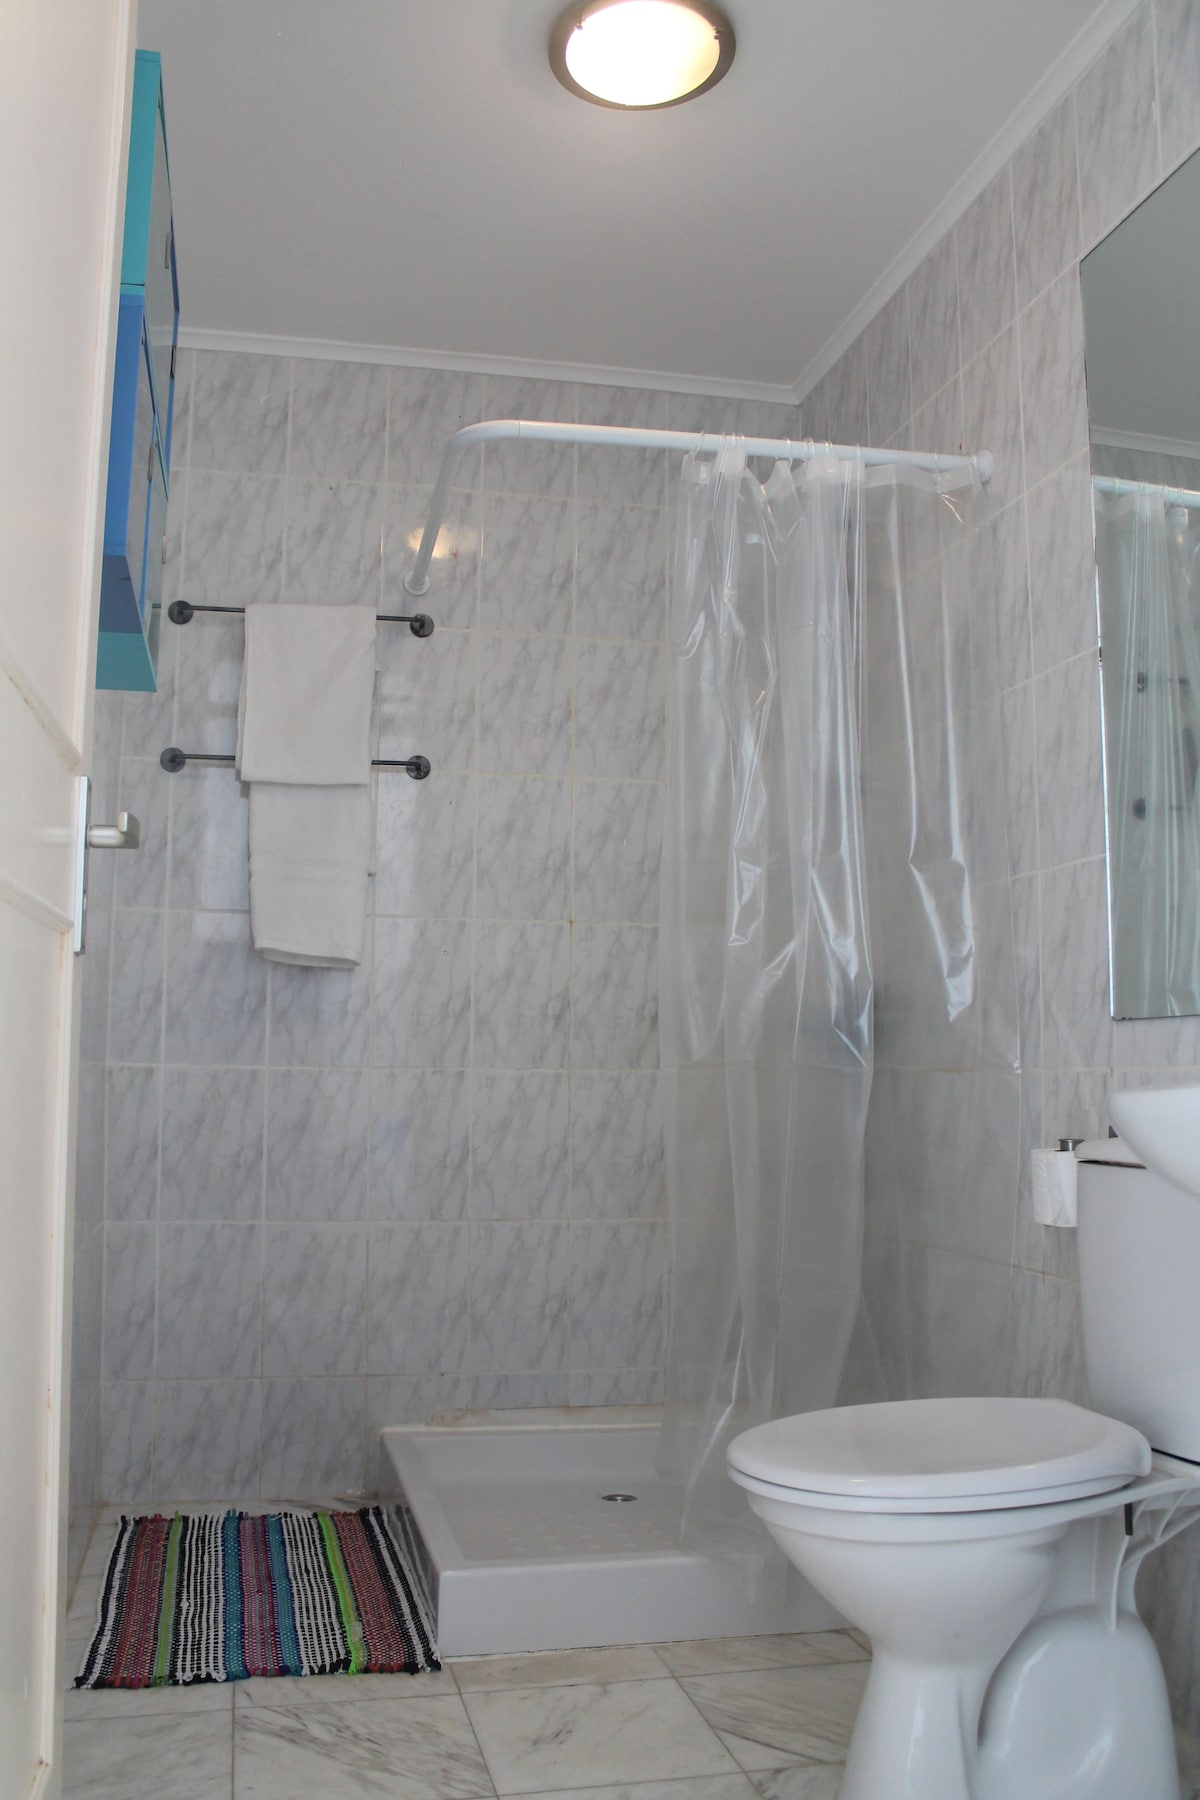 bathroom with hot water, shower